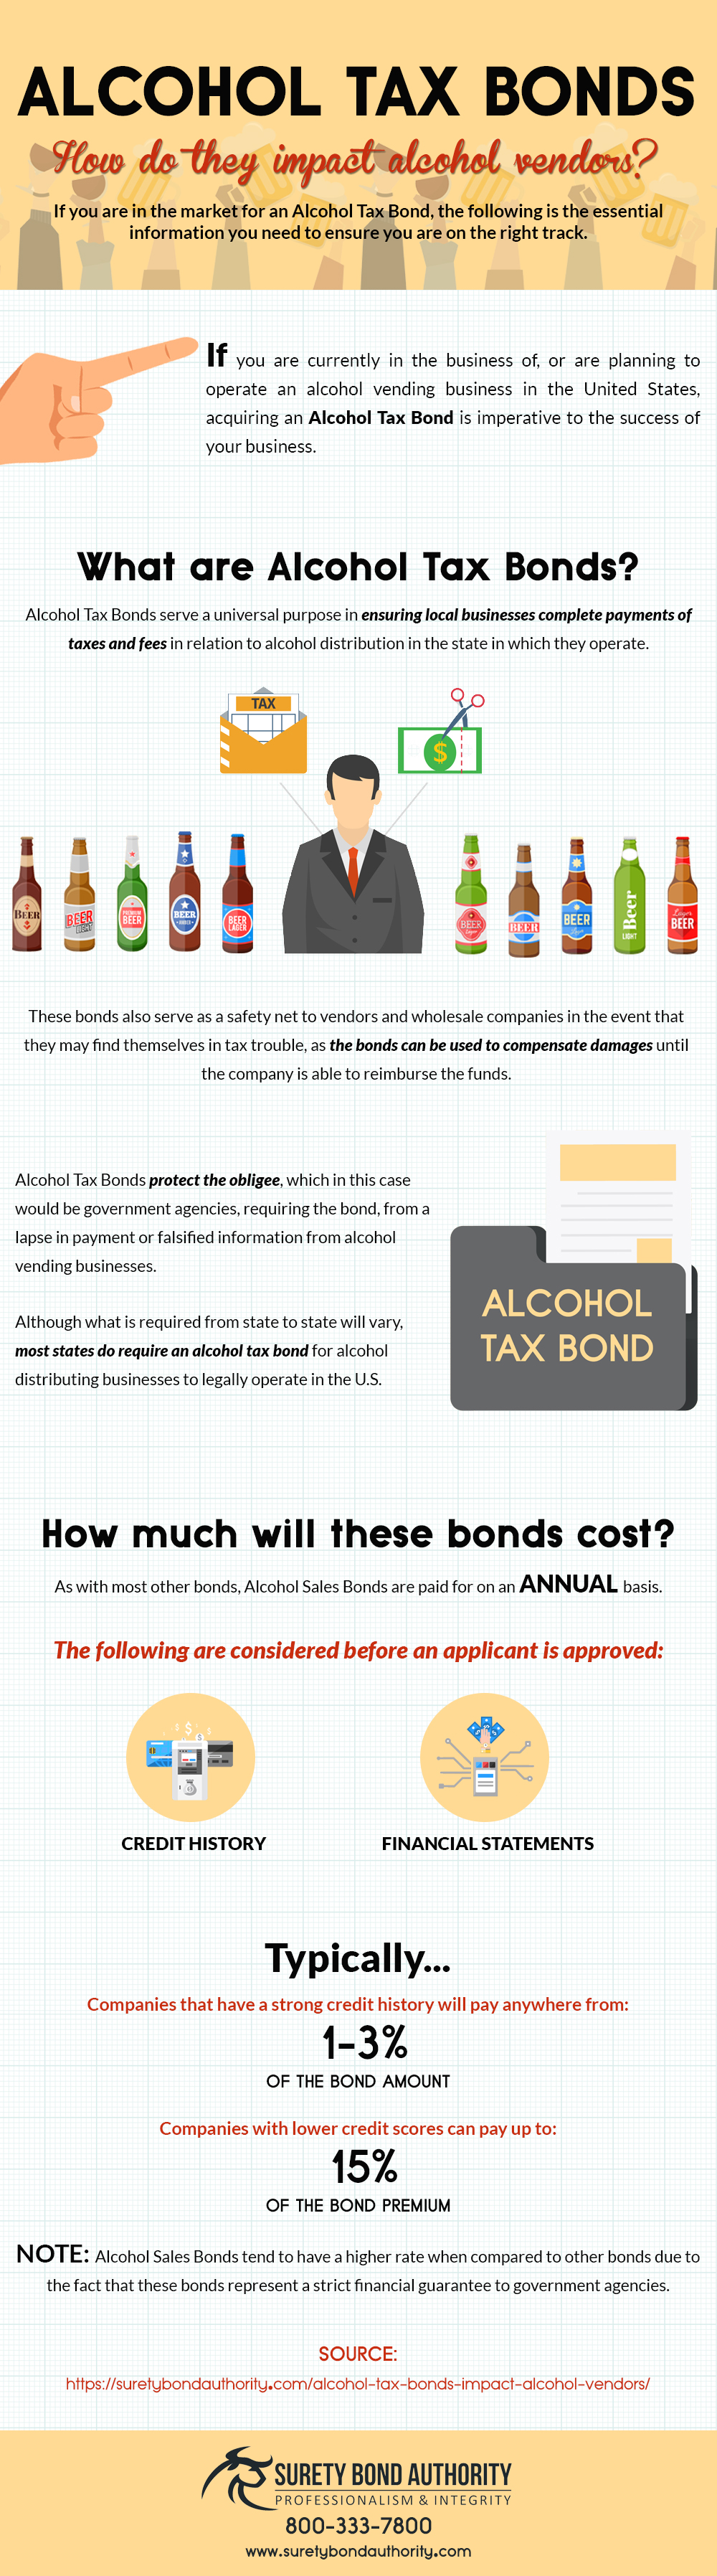 Alcohol Tax Bonds Infographic